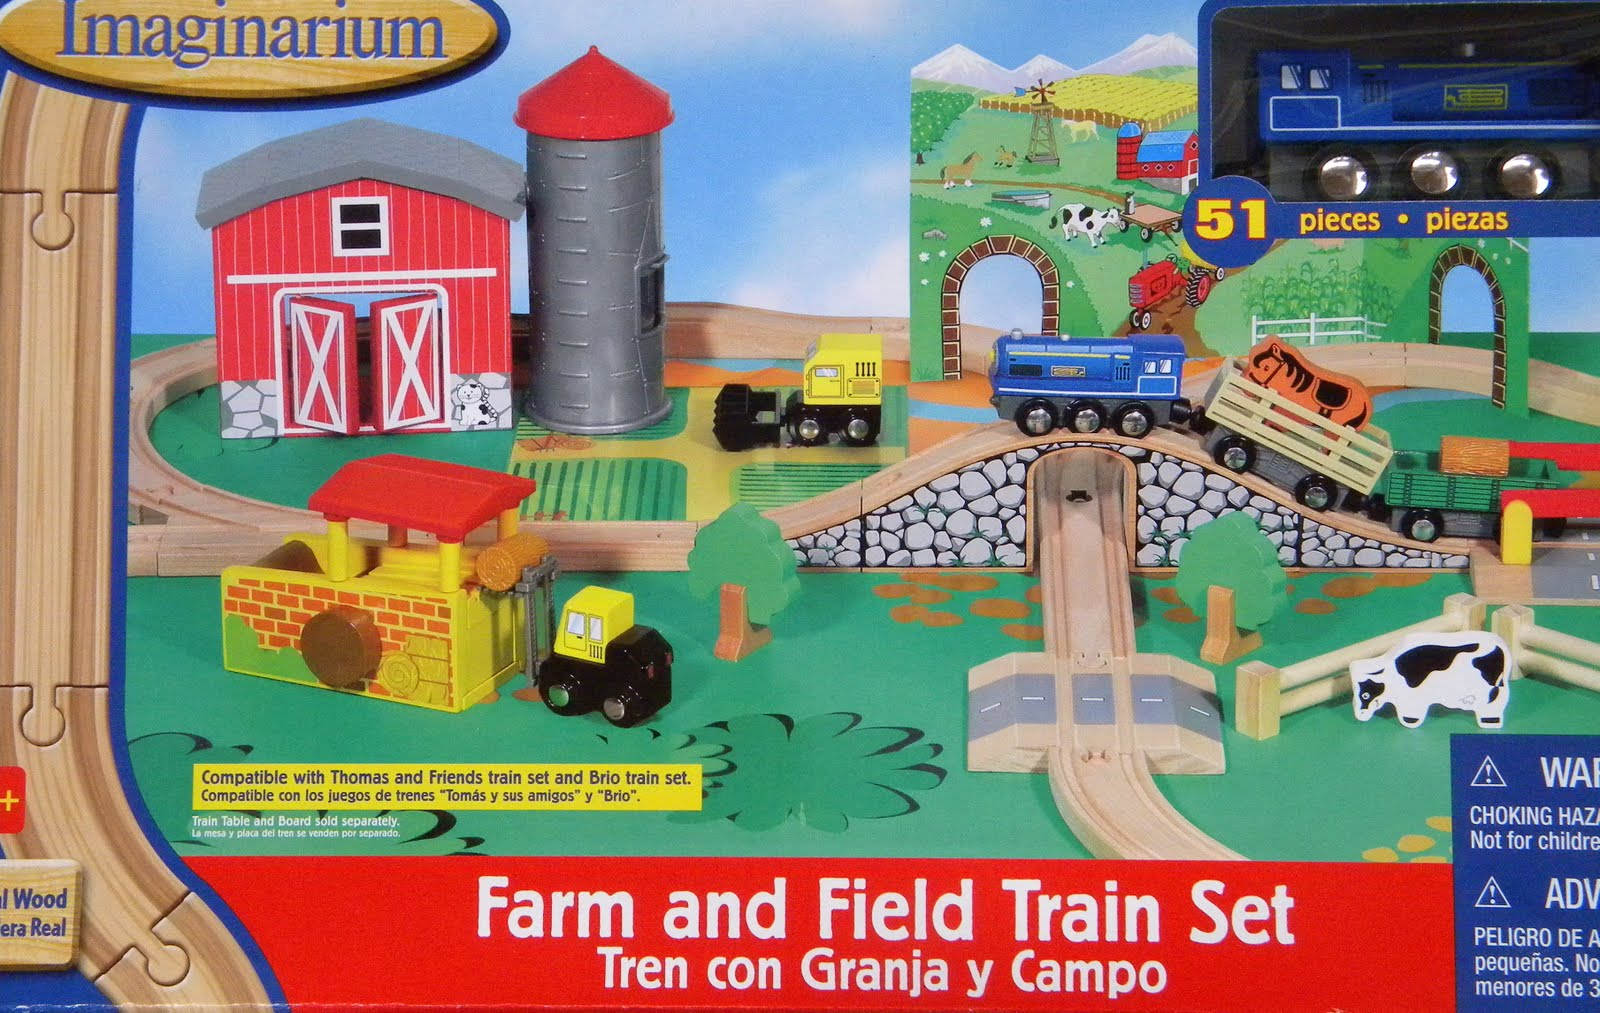 Minneapolis Virtual Garage Sale: Imaginarium Farm and Field Train ...